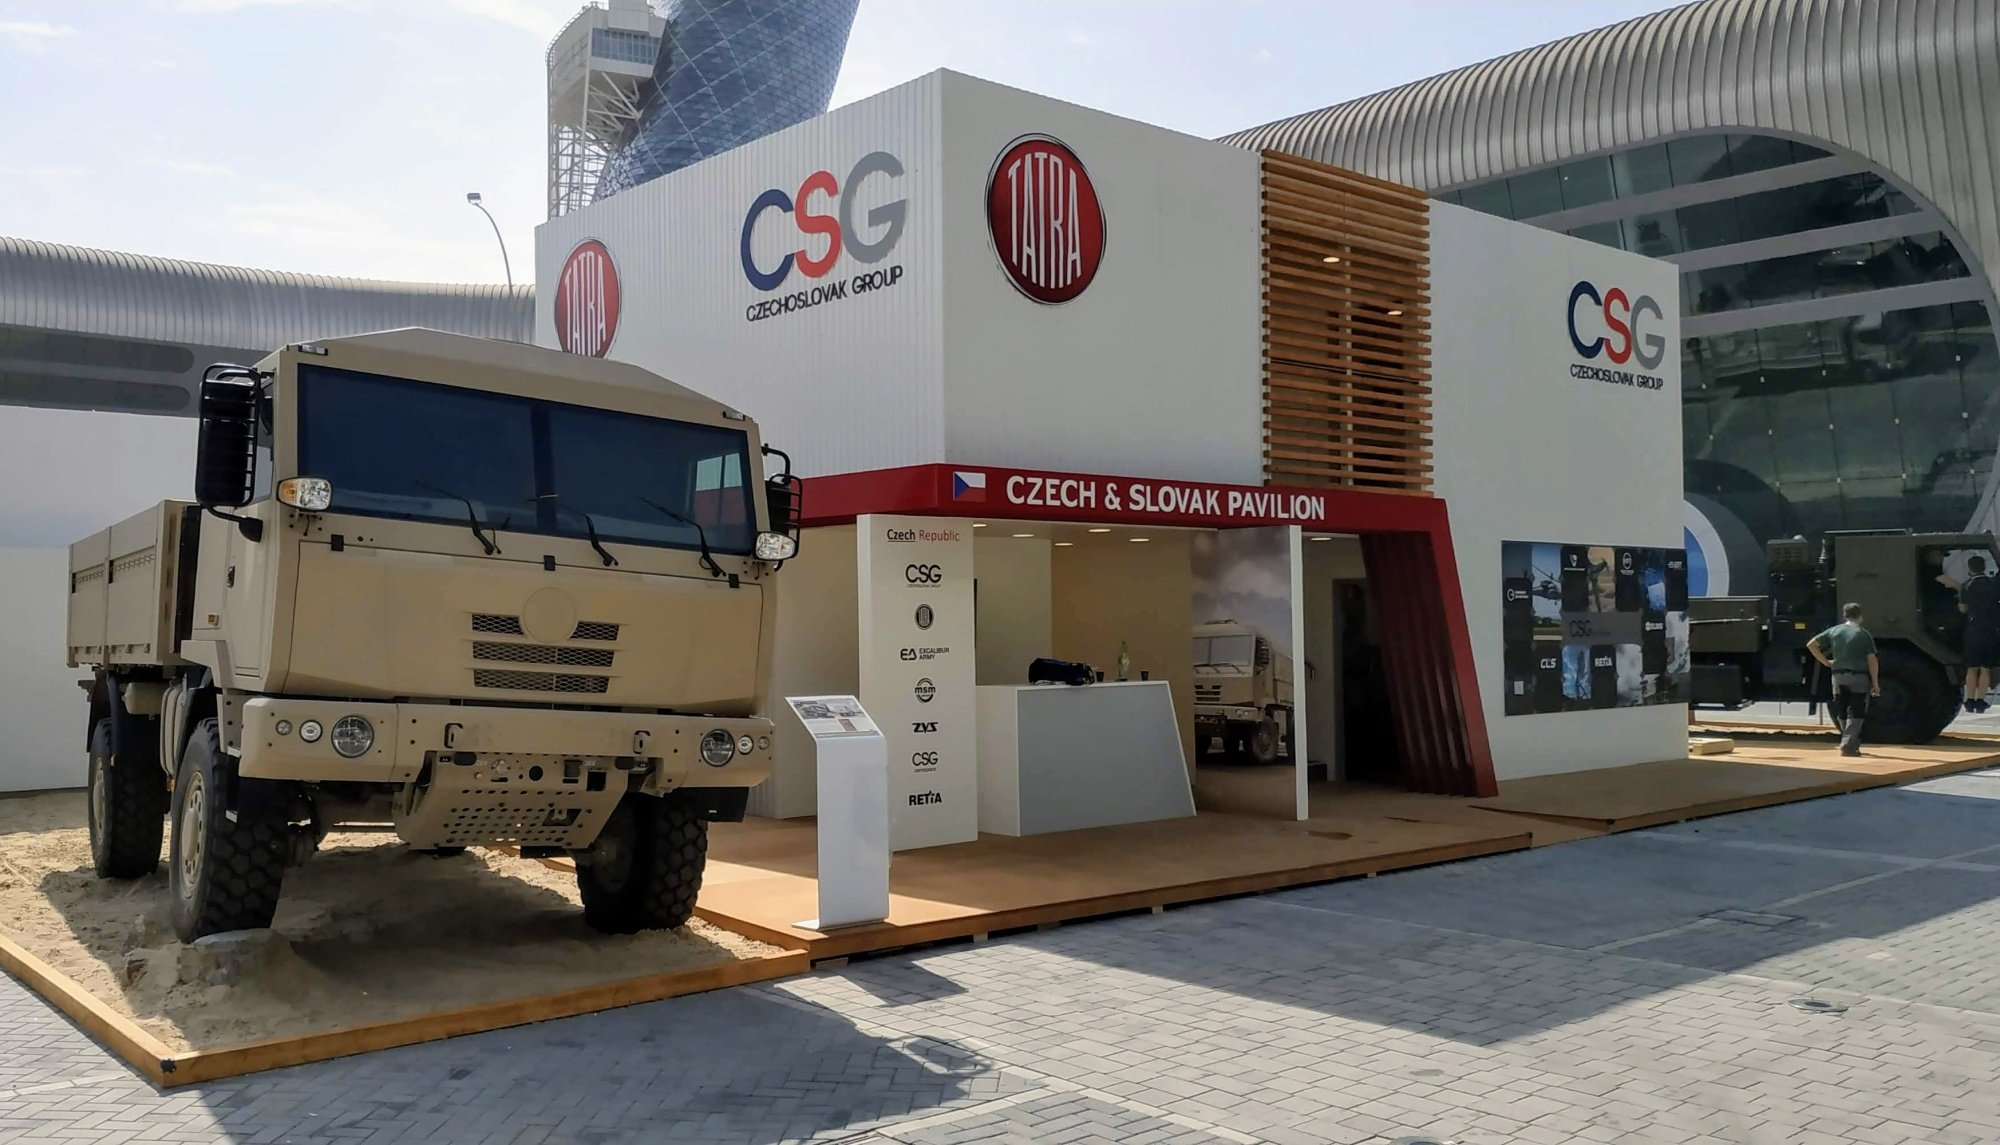 Exhibits of the Czech and Slovak companies of the CZECHOSLOVAK GROUP and TATRA TRUCKS attracted significant attention at the IDEX 2019 exhibition in Abu Dhabi